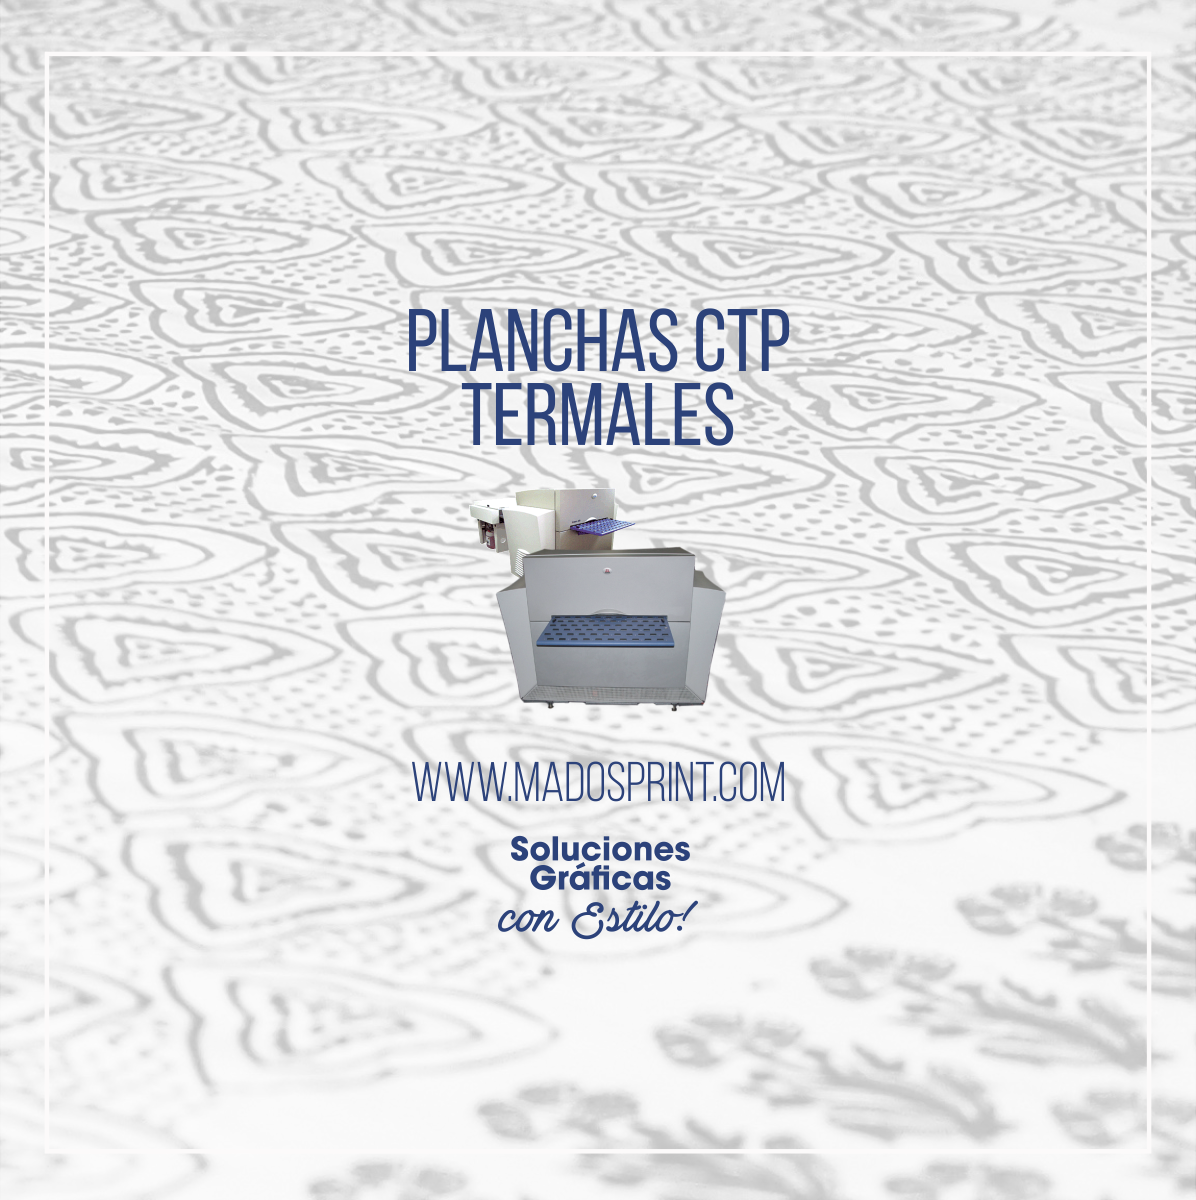 Planchas CTP Termales